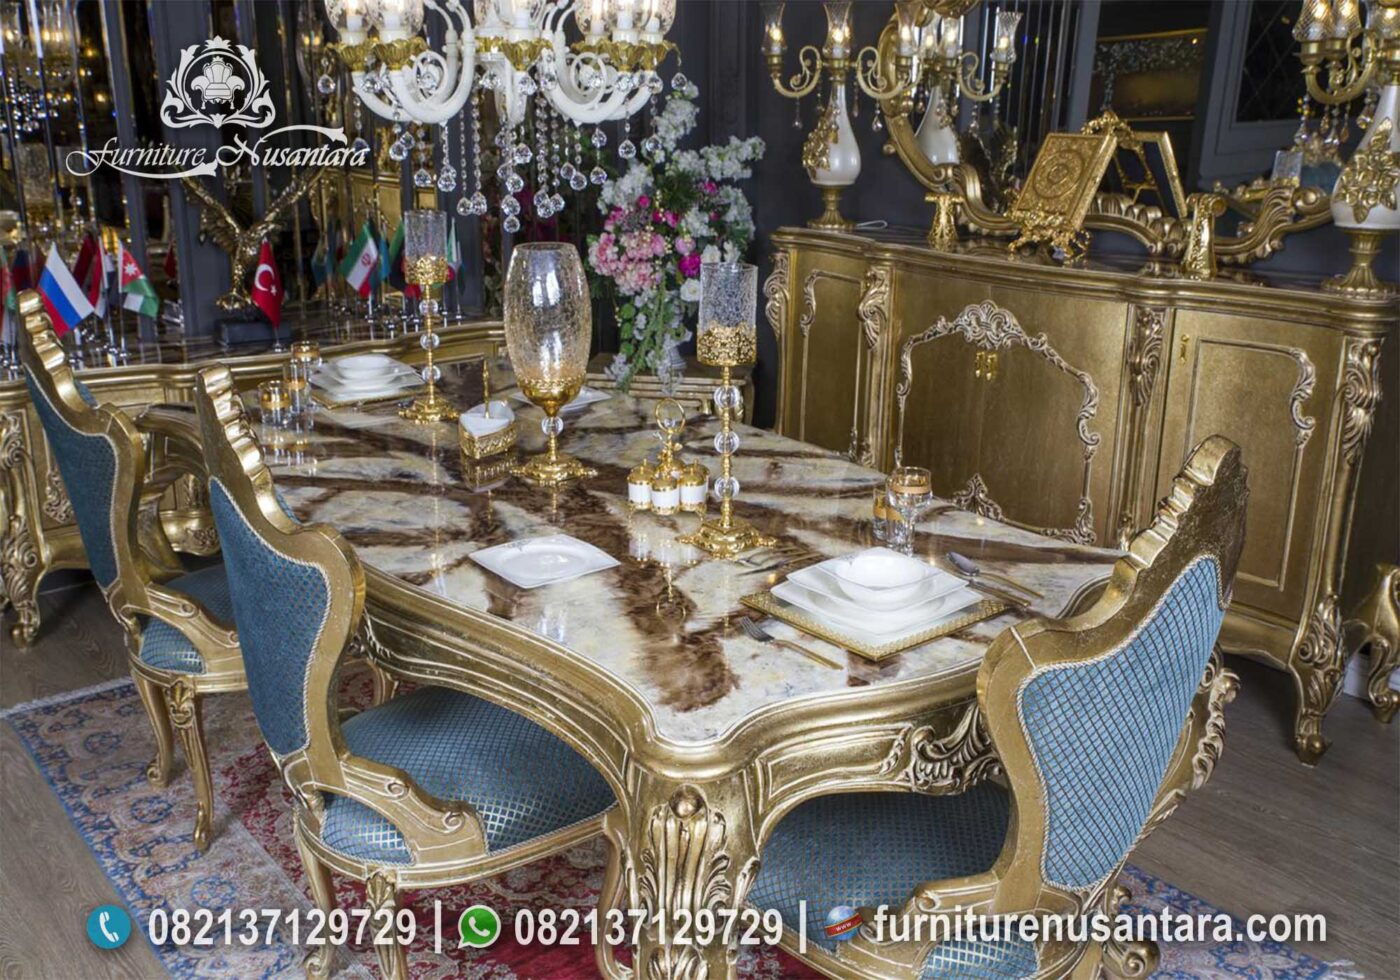 Jual Set Meja Makan Gold Timur Tengah MM-27, Furniture Nusantara